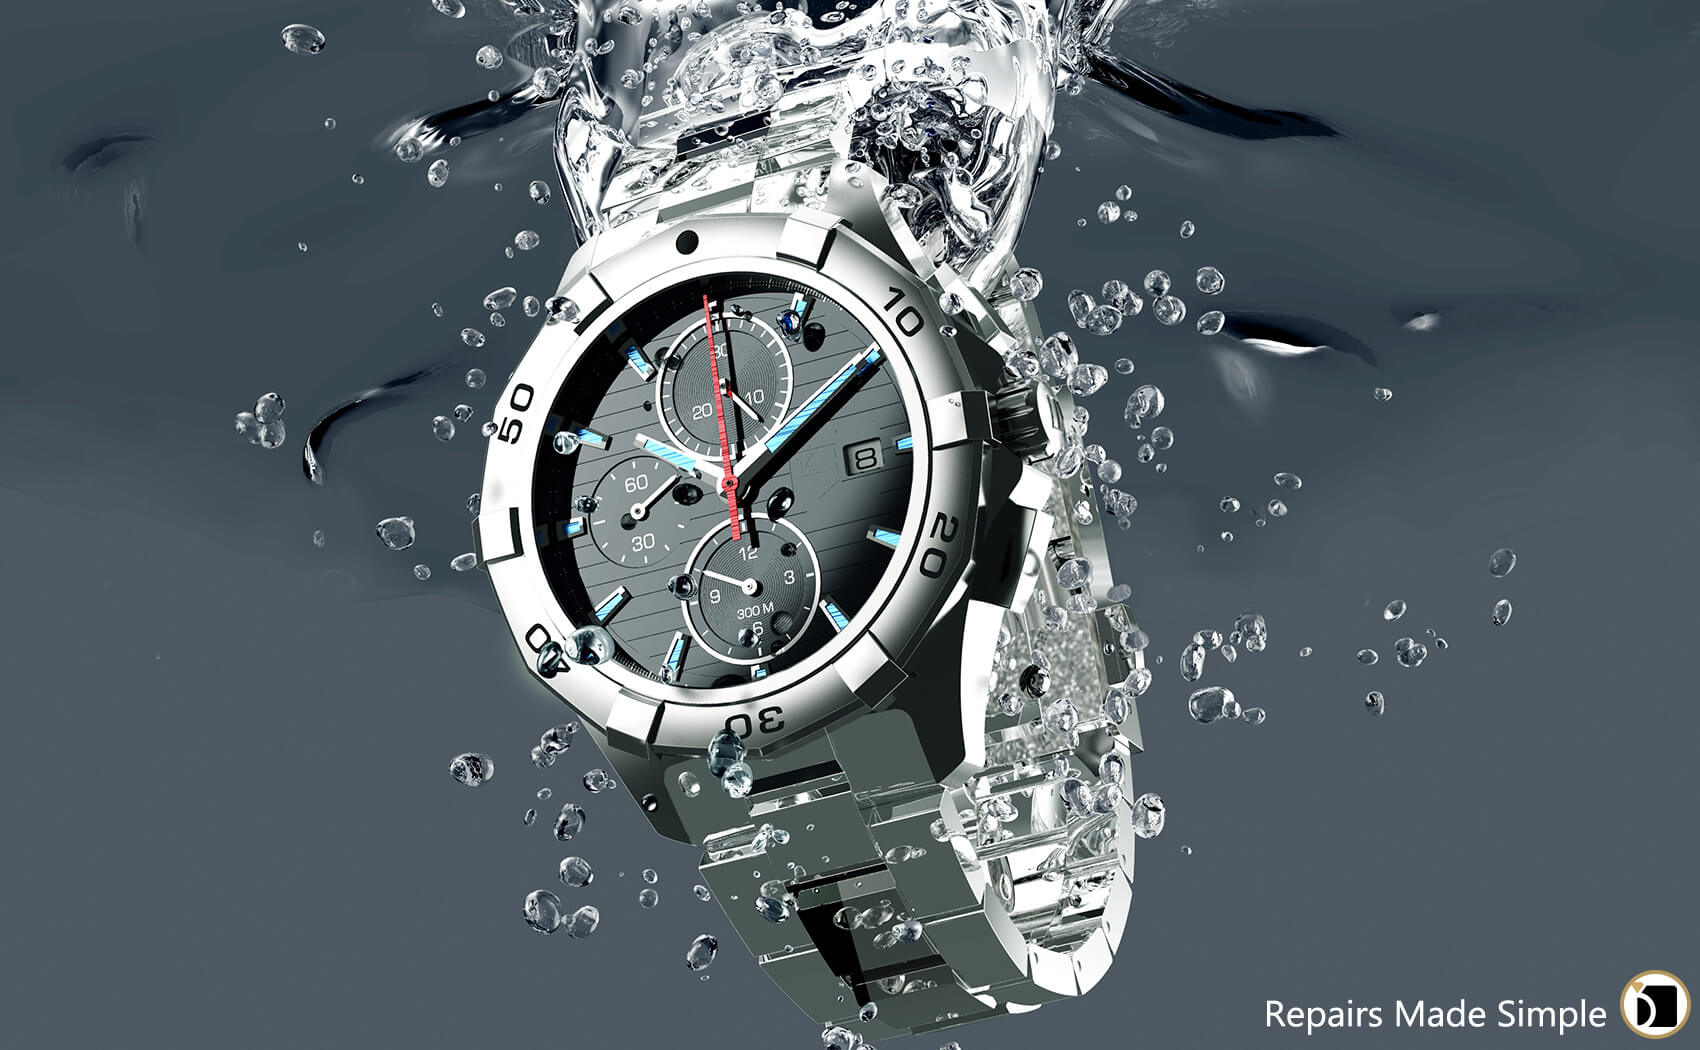 Image showcasing water resistant watch submerged